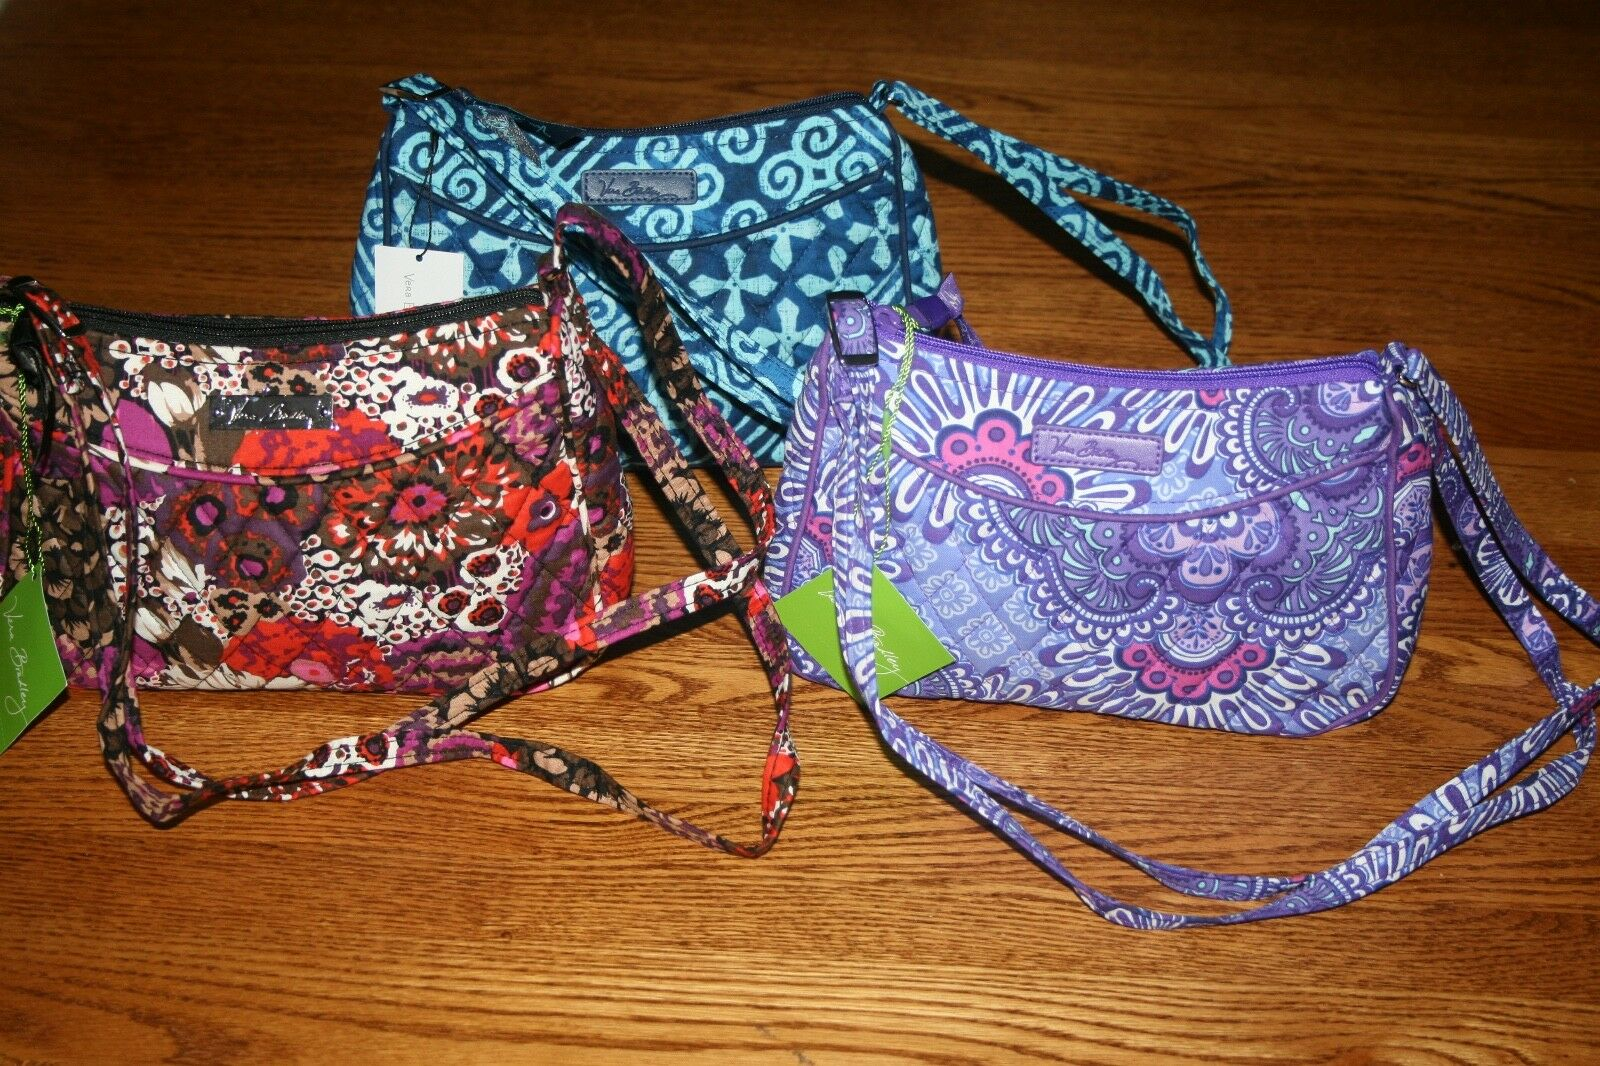 33c1619e766c Vera Bradley 4pc Cosmetic Organizer Painted Feathers Little Crossbody Purse  for sale online